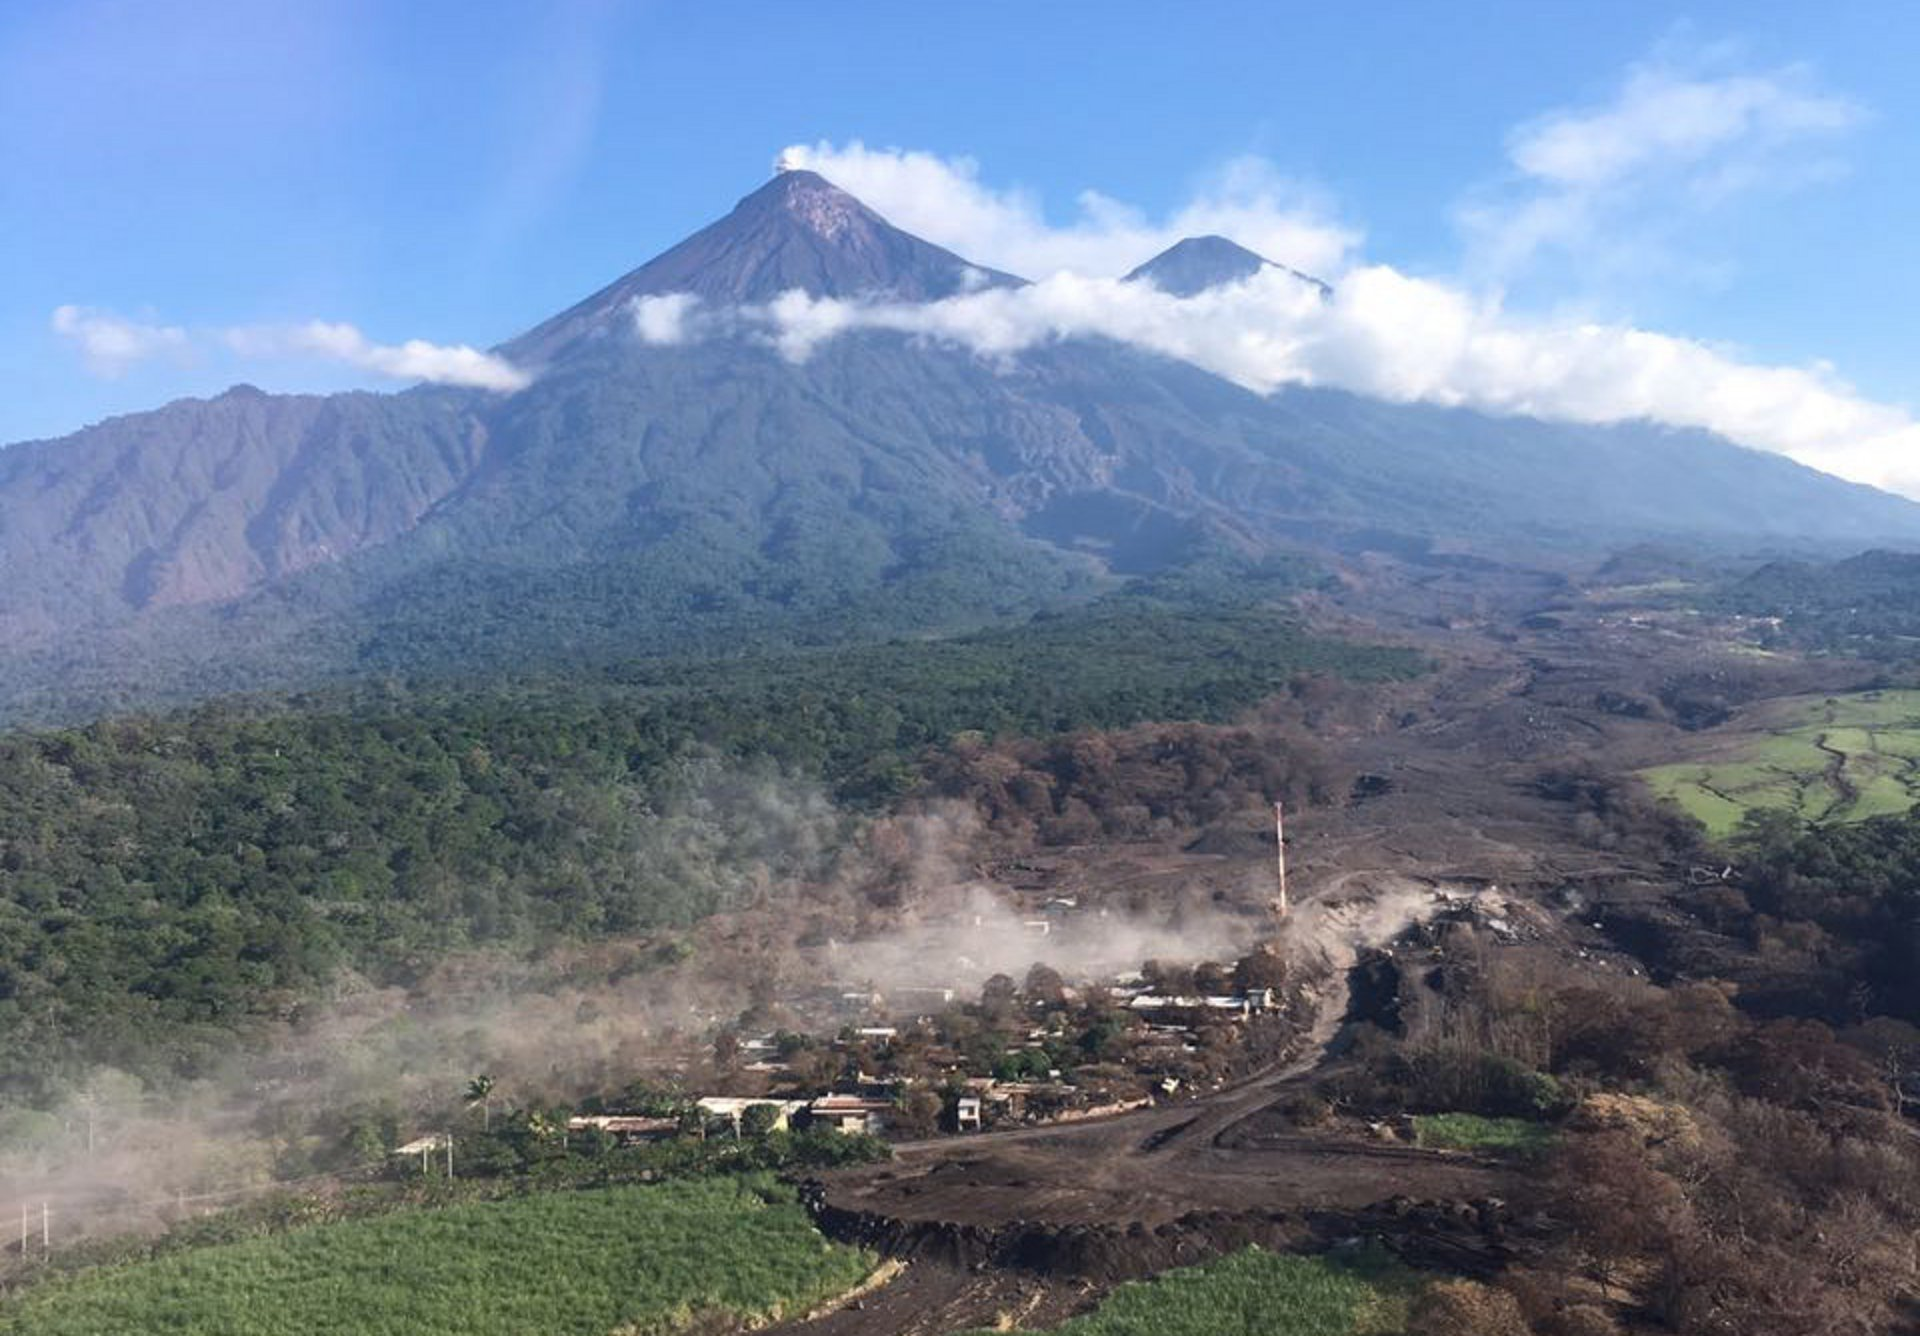 The Airbus Foundation worked with the Guatemalan Red Cross after the eruption of the Volcán de Fuego in early June, which caused 100 deaths and the disappearance of 200 people.